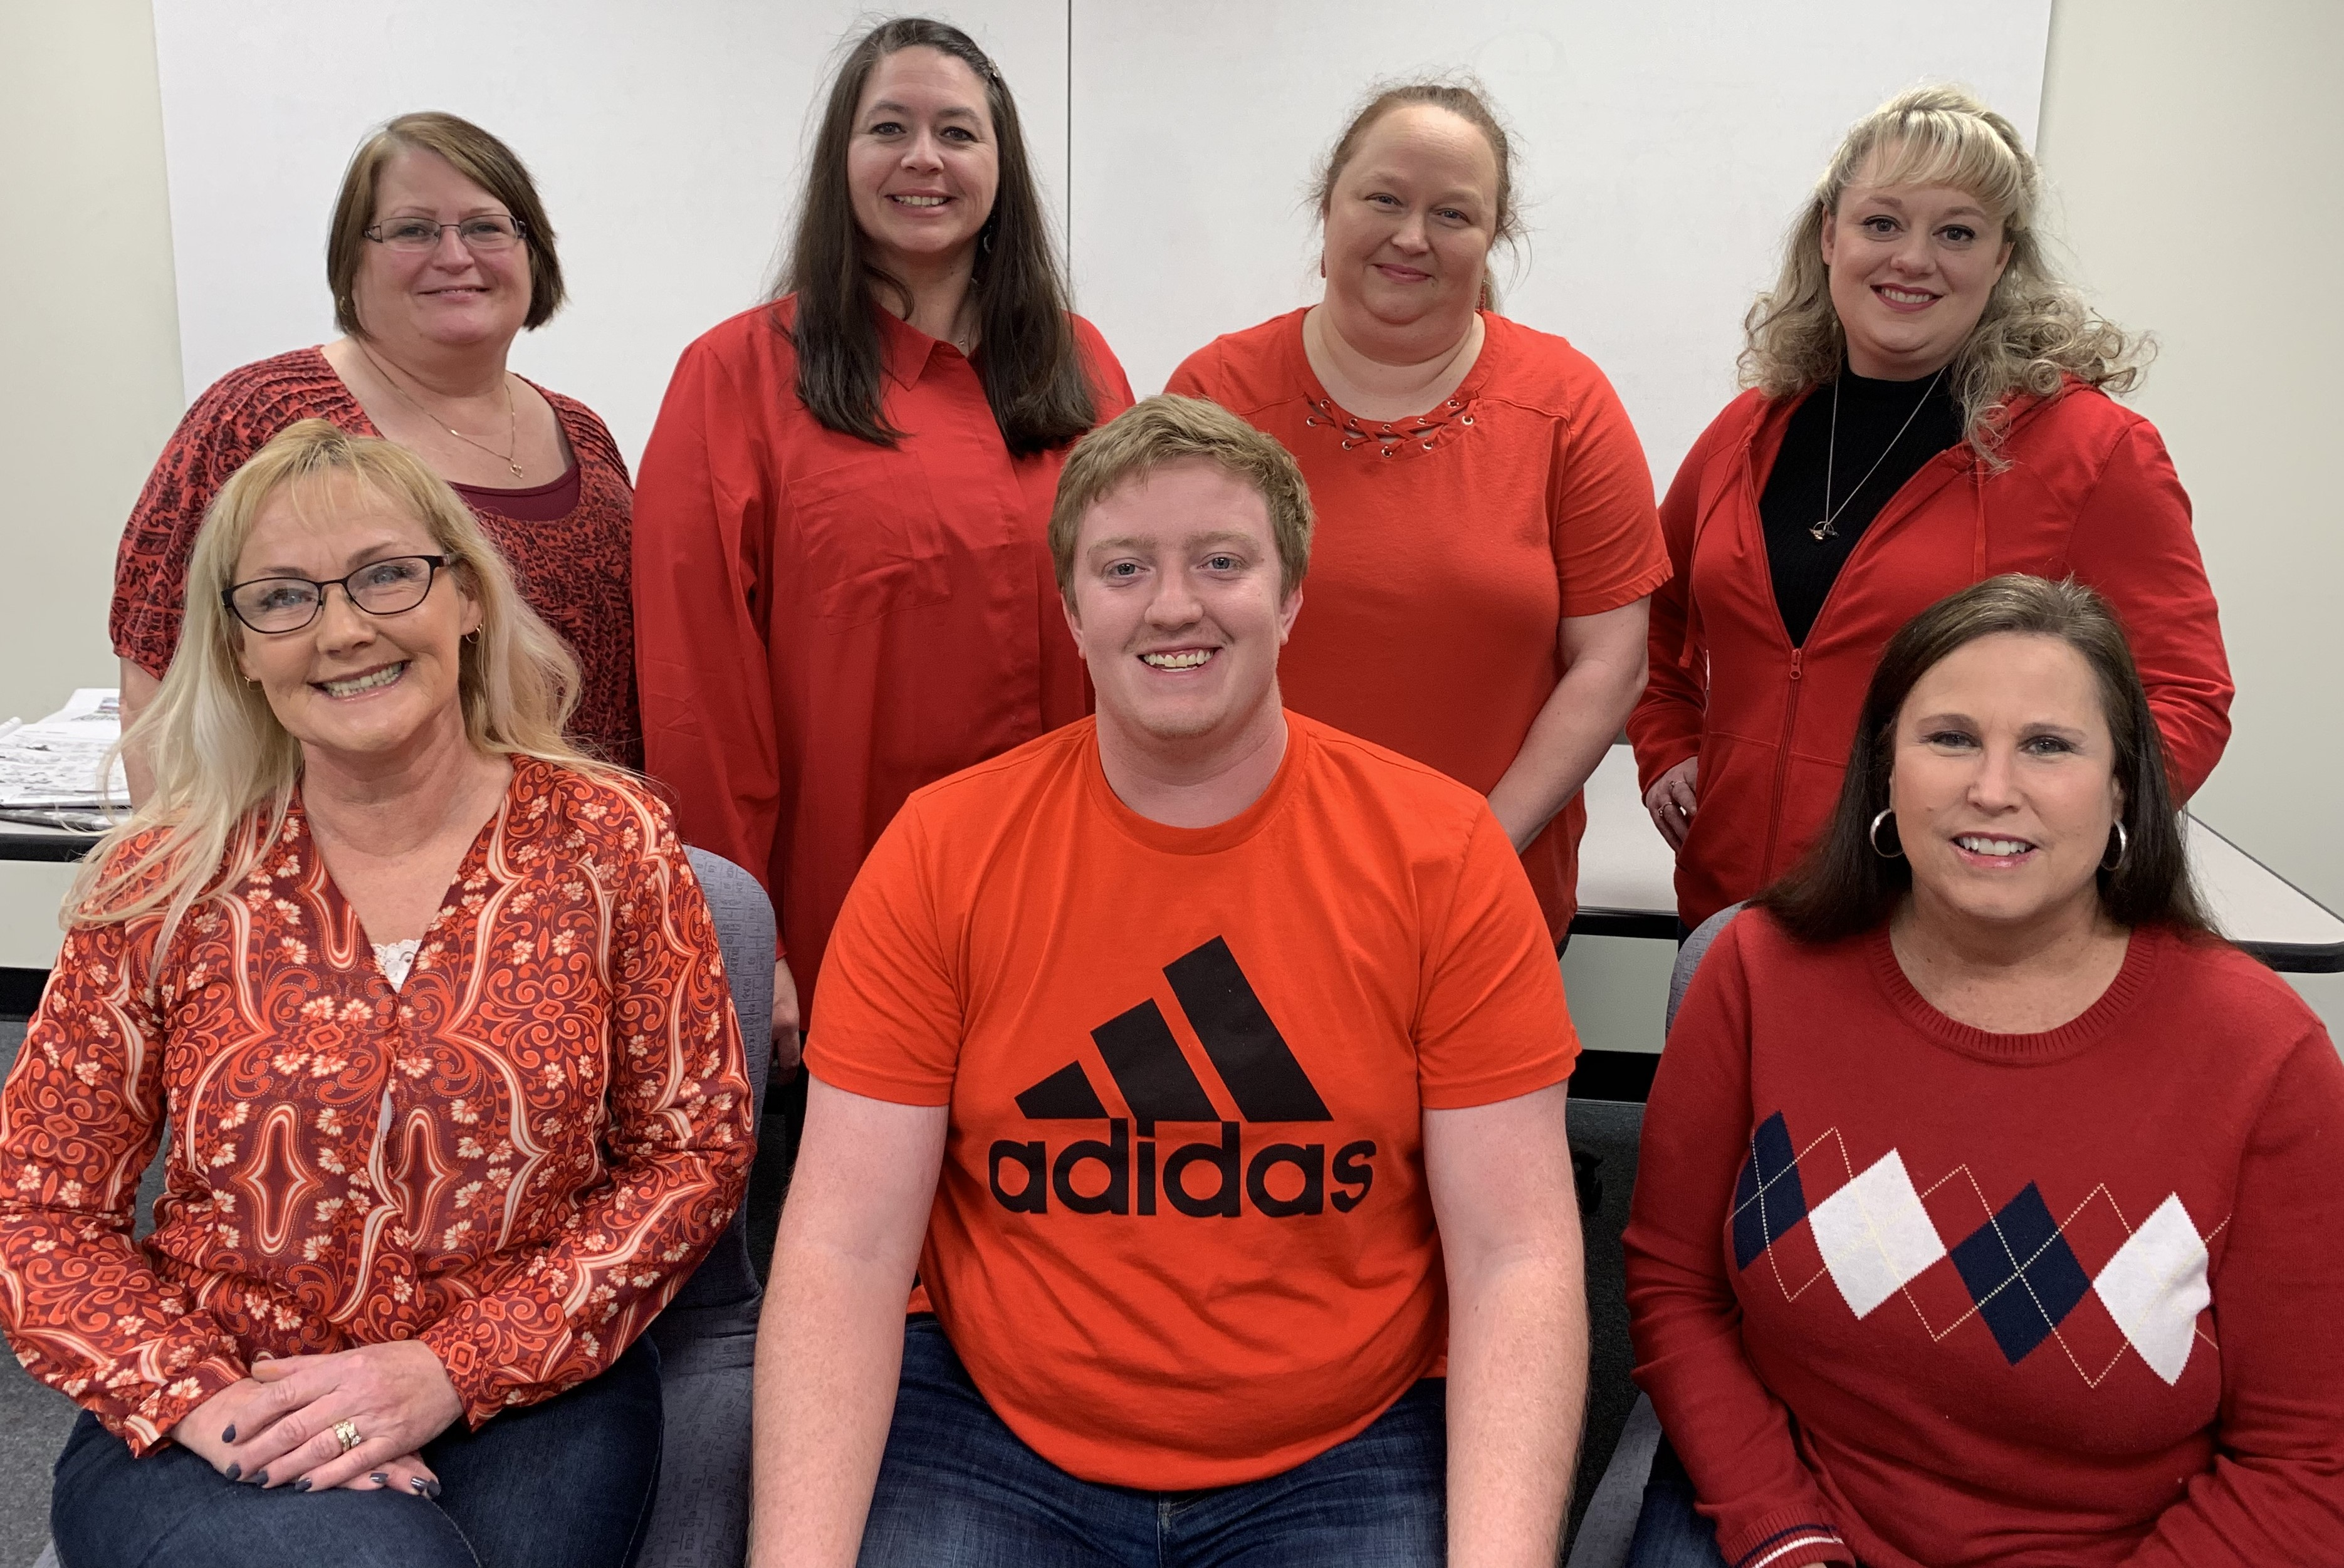 Carter County employees dressed in red and brought in heart healthy snacks in recognition of American Heart month.